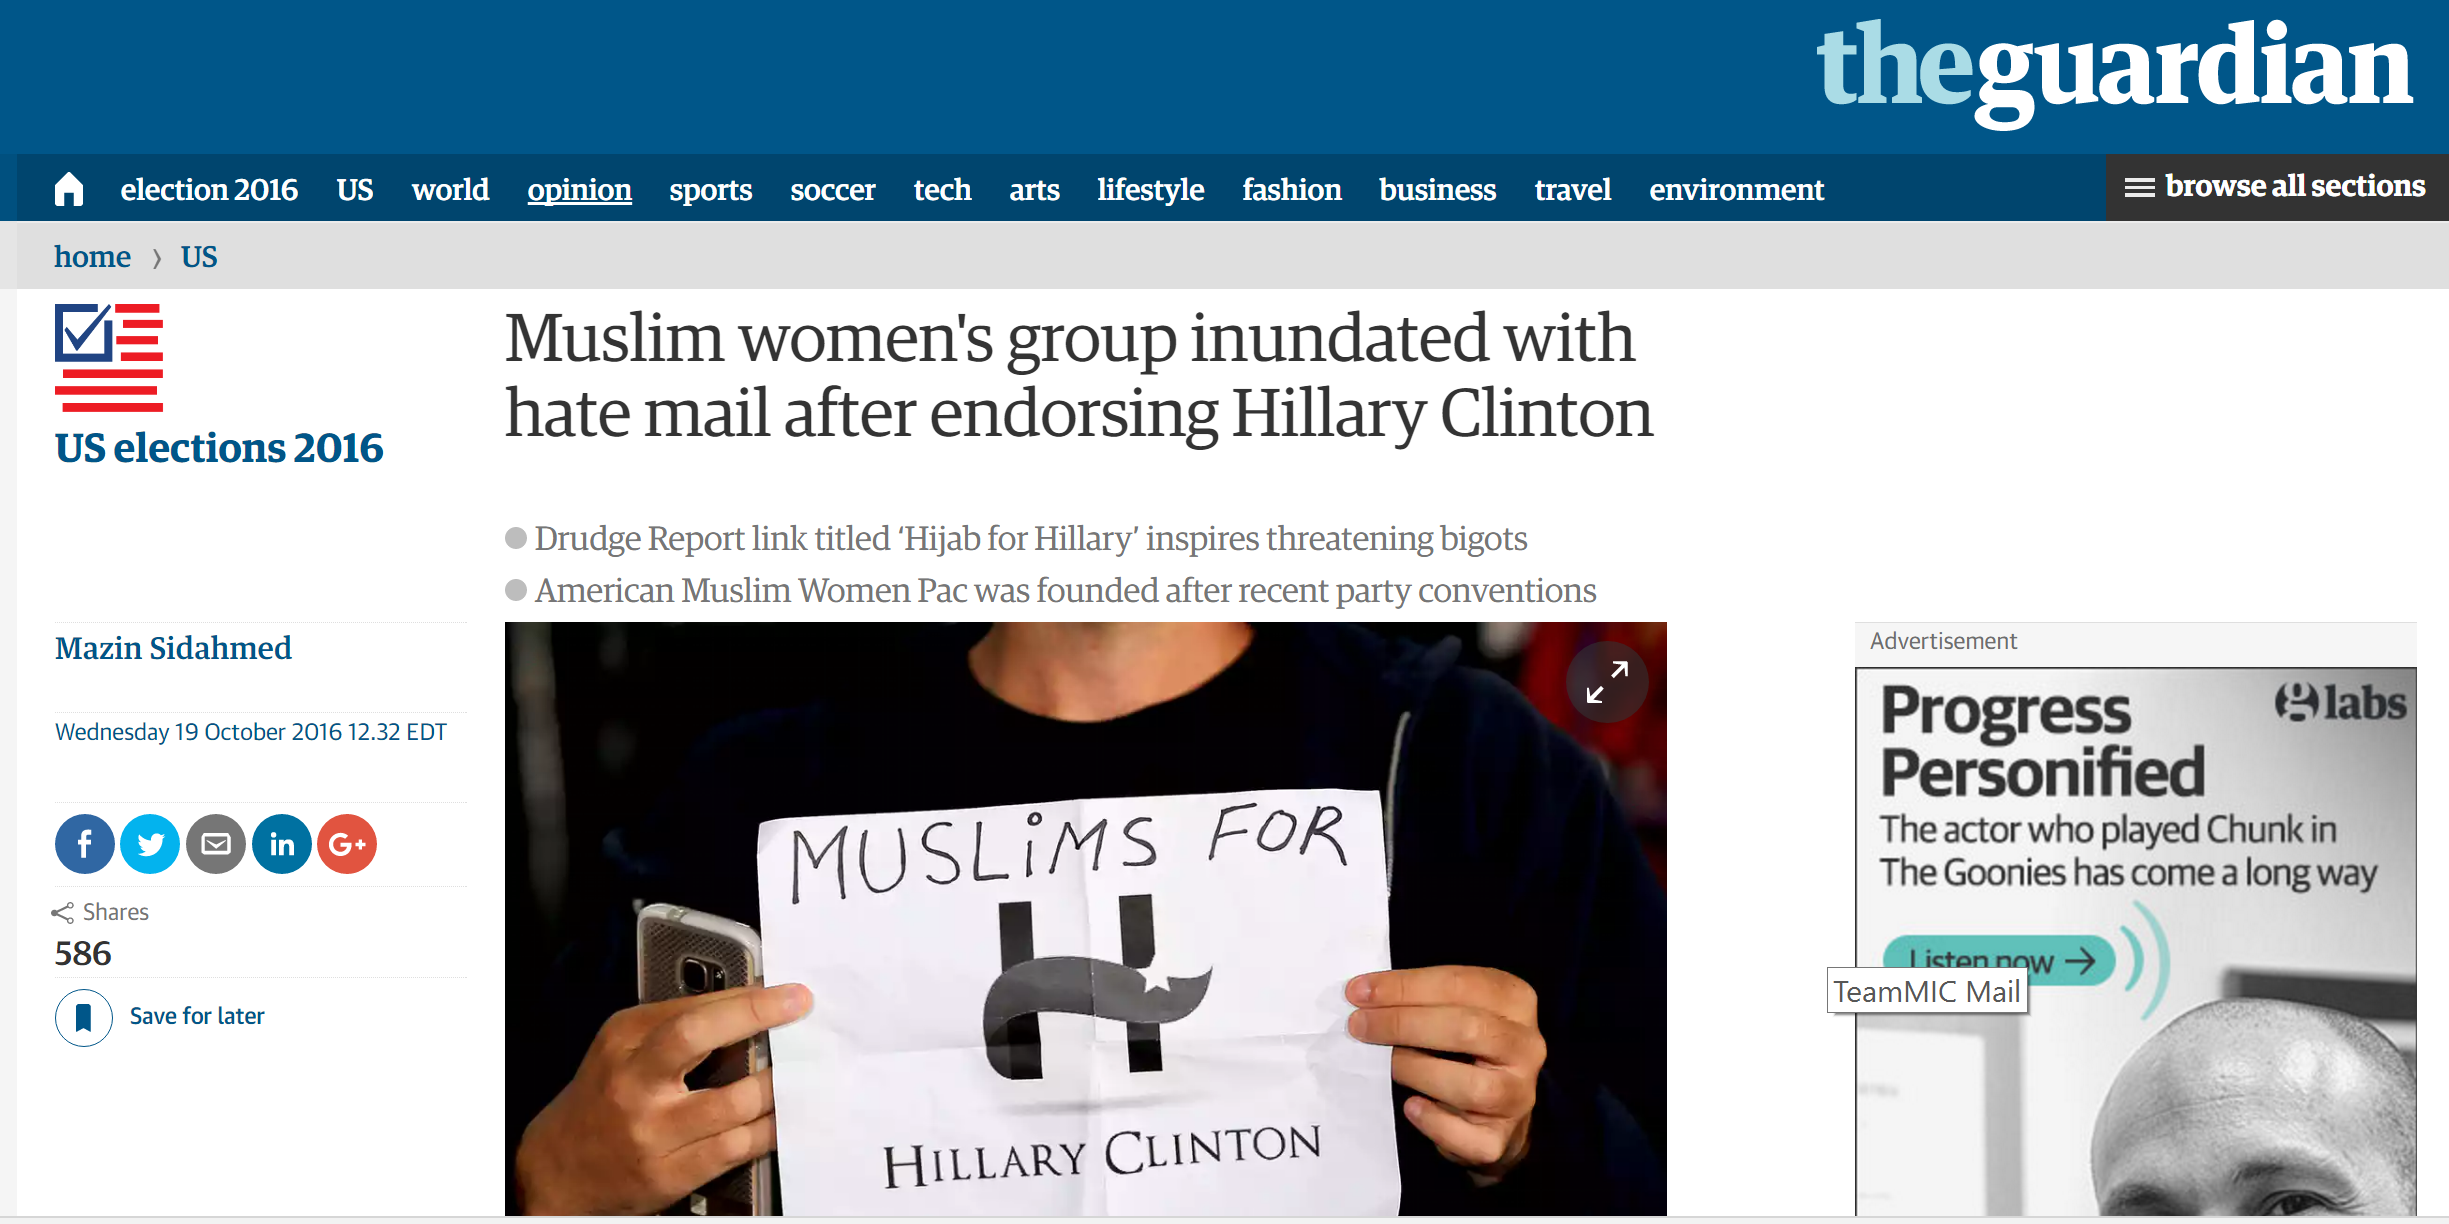 American Muslim Women PAC featured in the Guardian on 10-19-2016